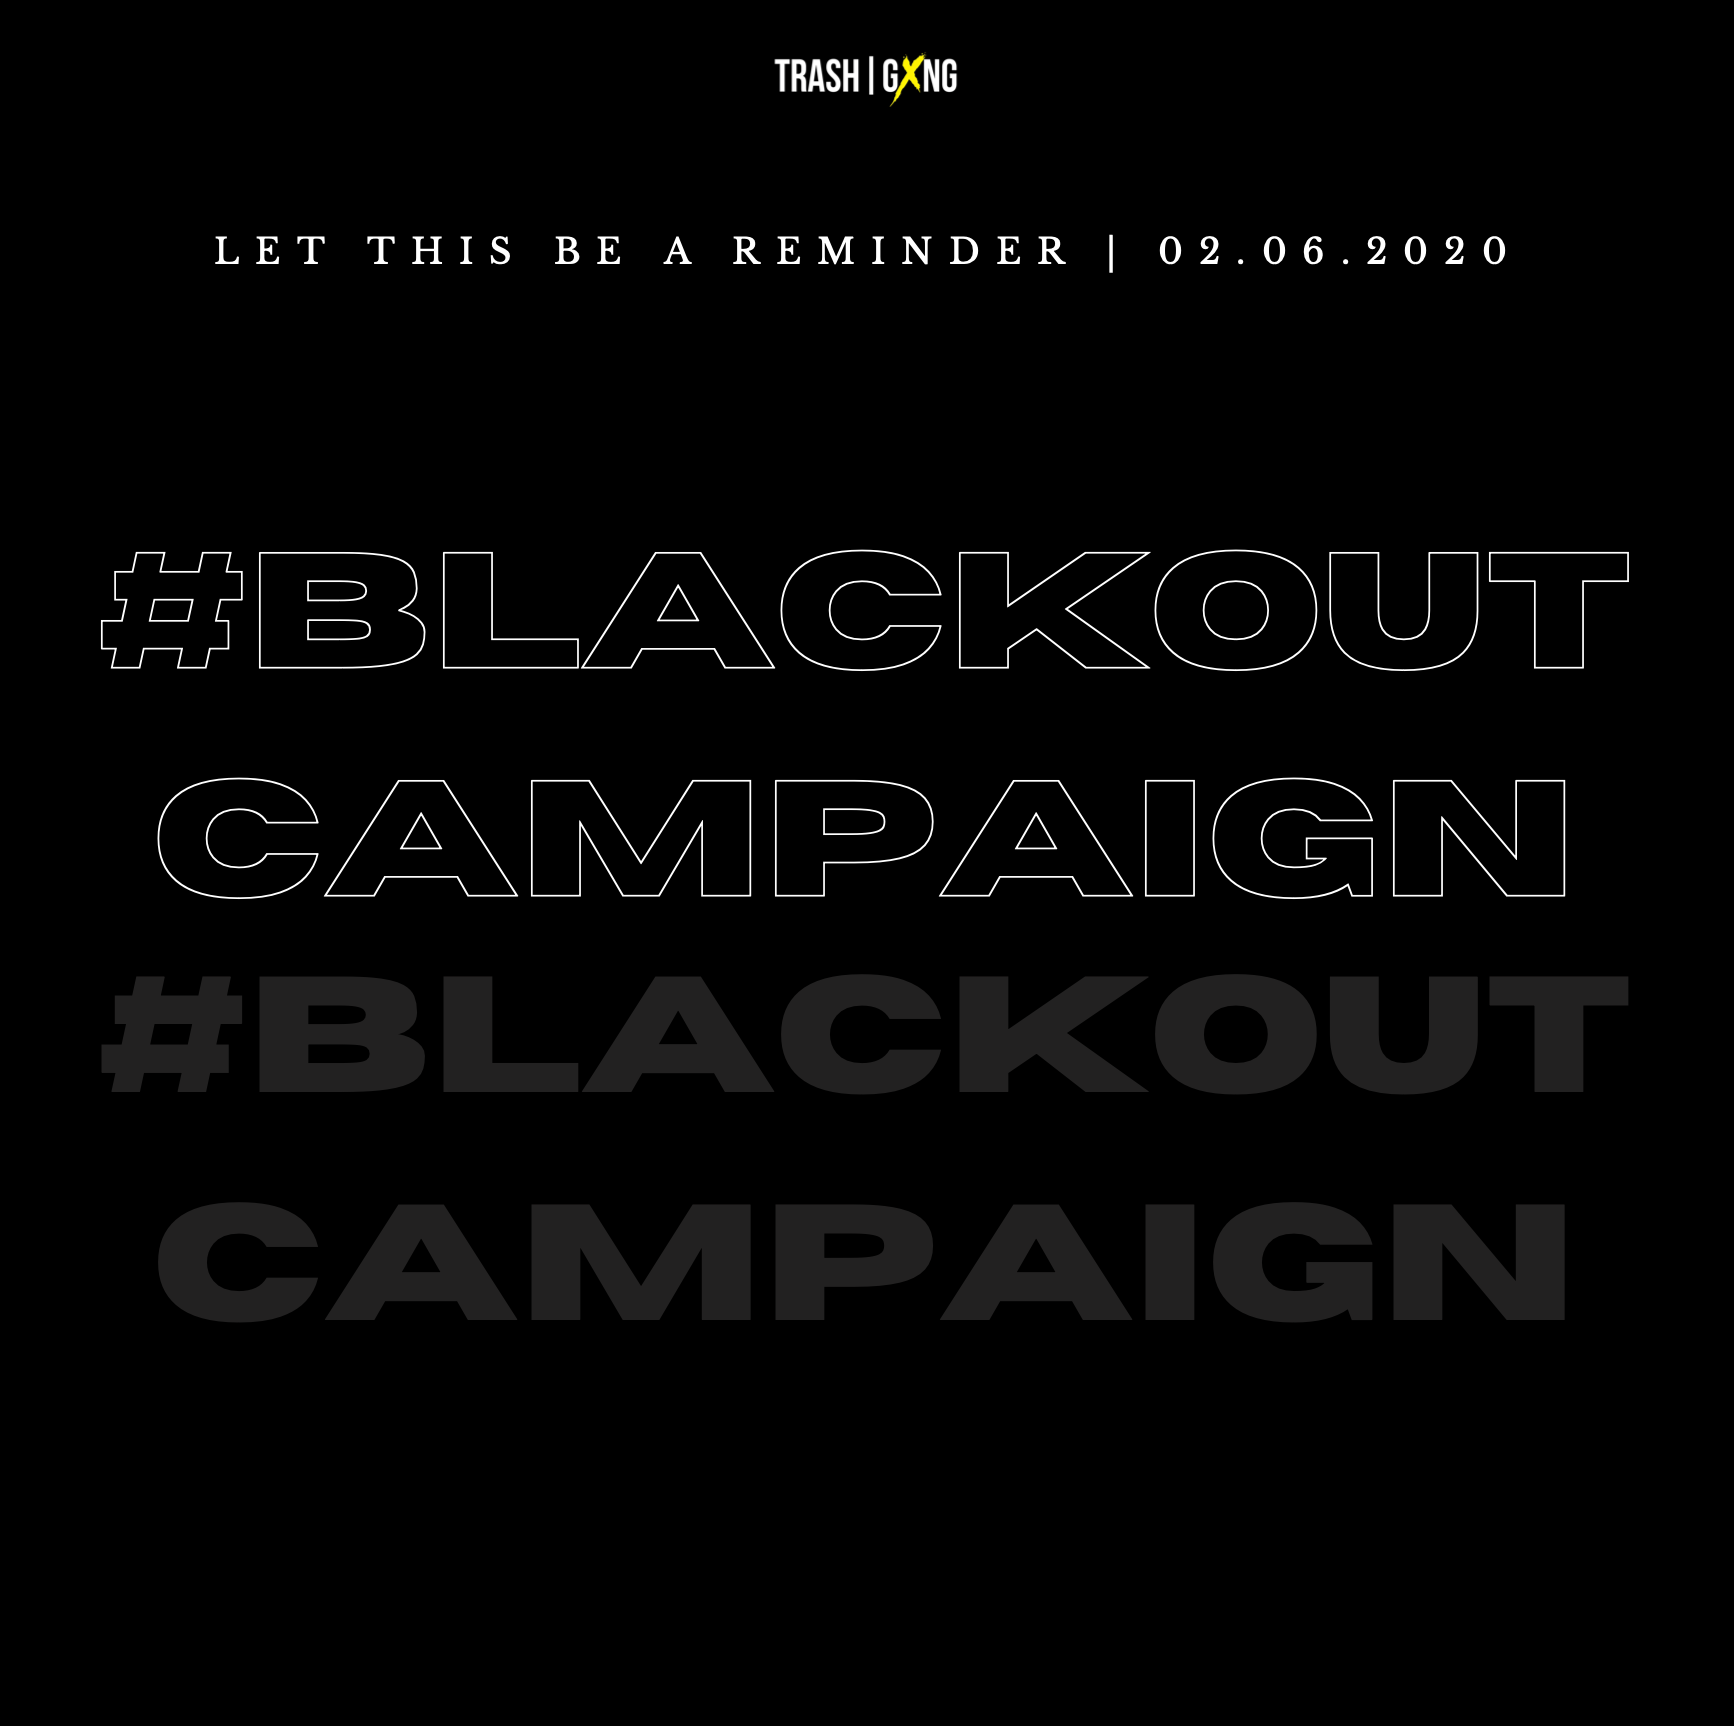 Blackout Campaign - Supporting #BLM